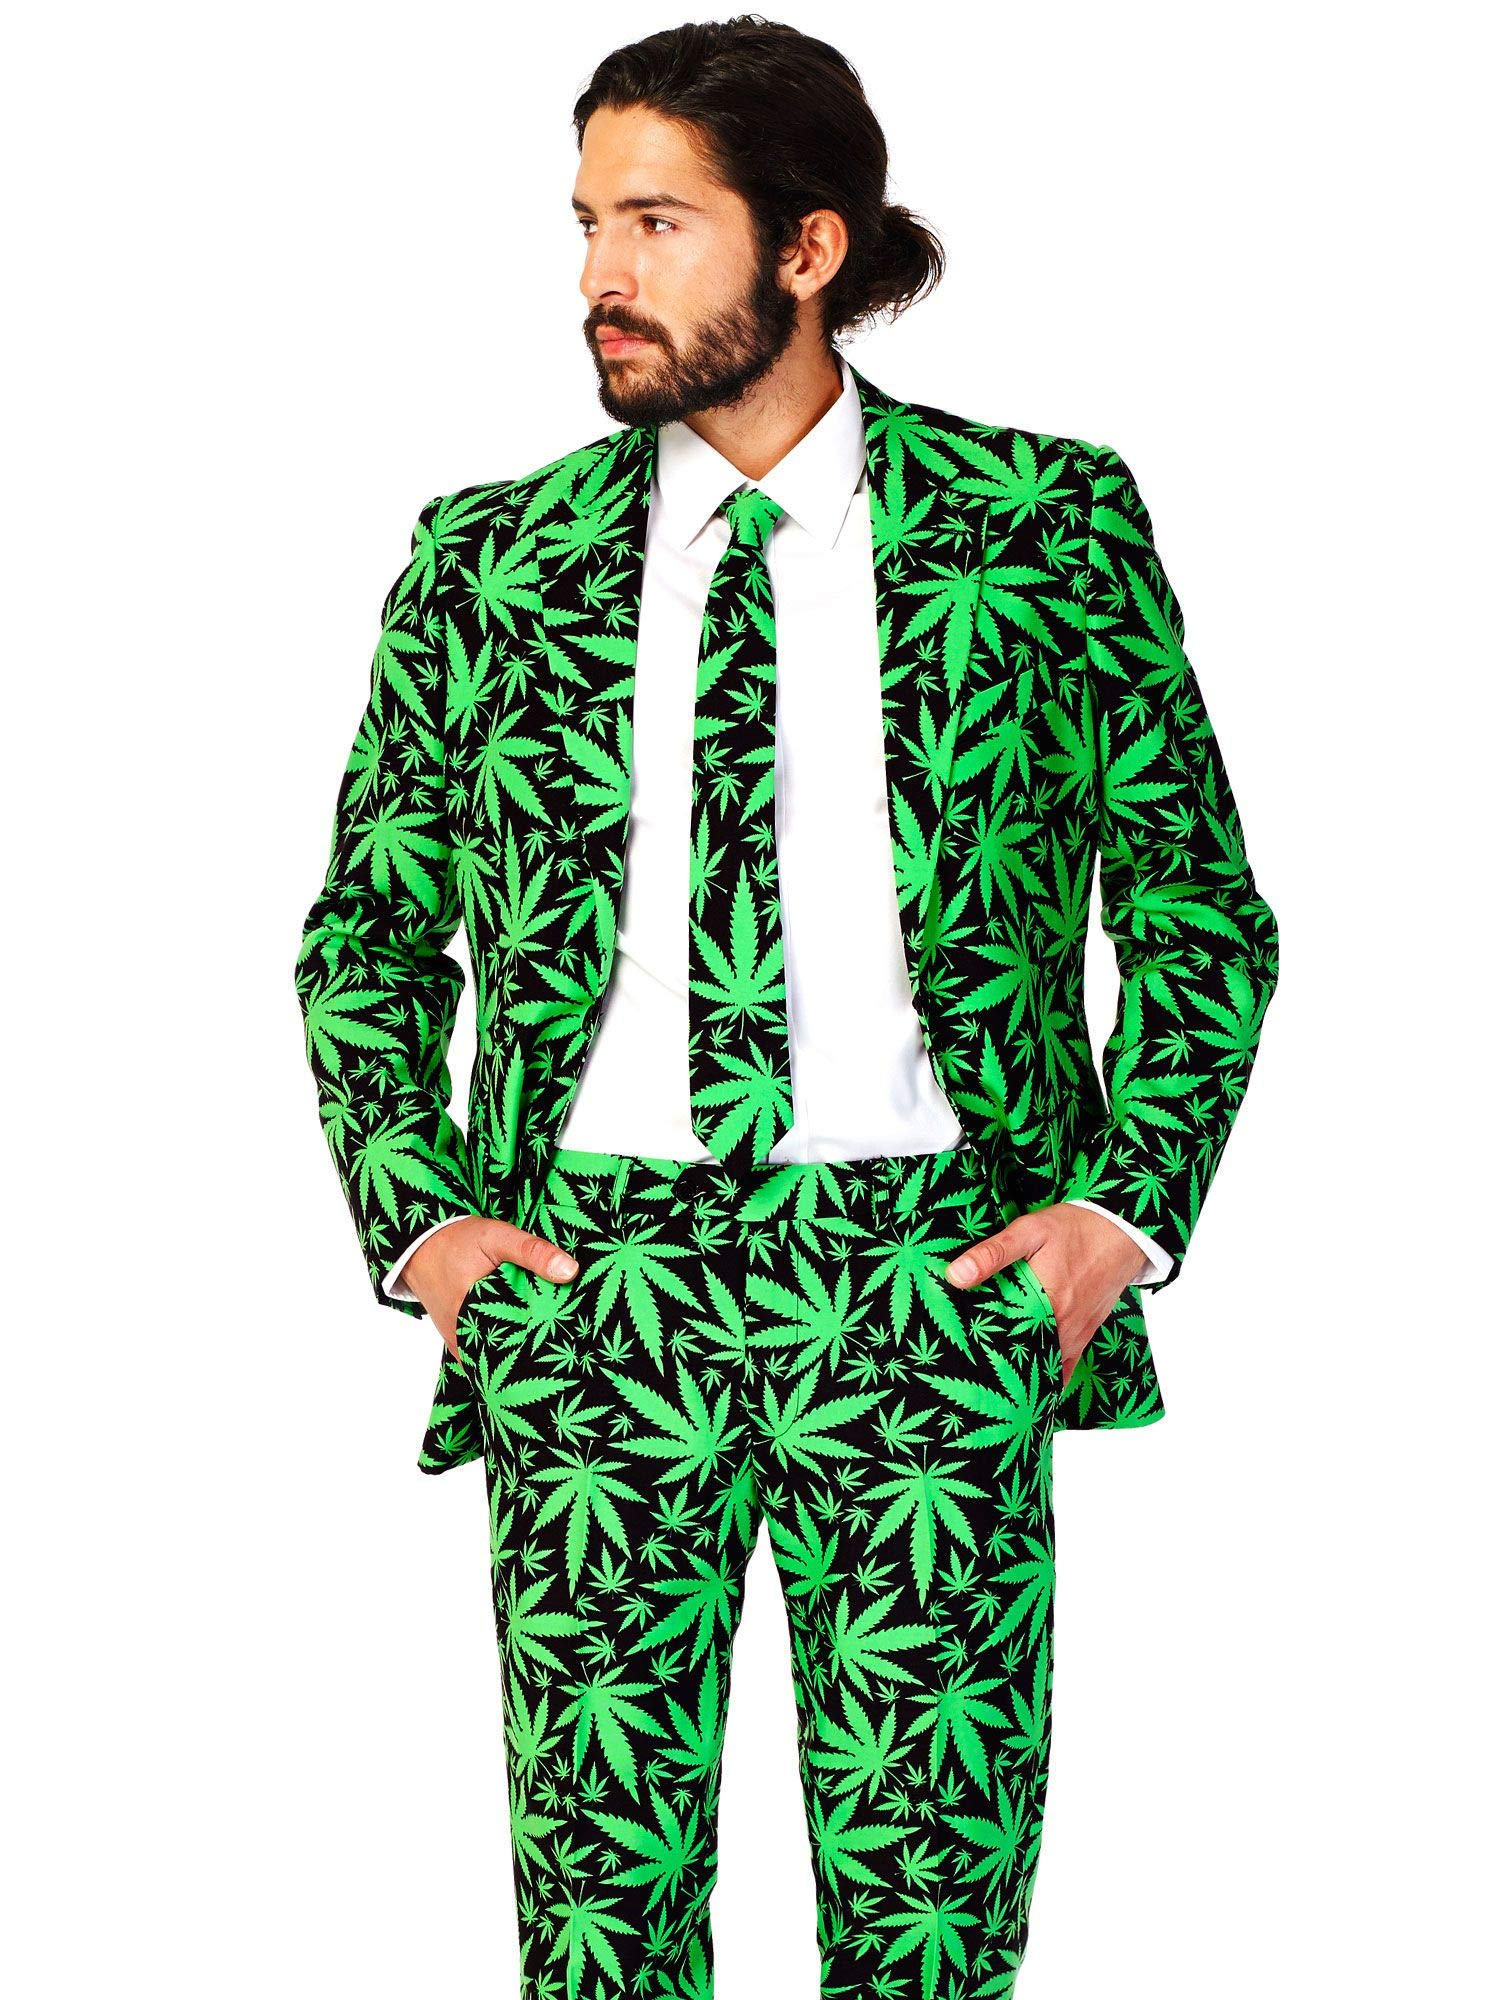 OppoSuits Men's Cannaboss Party Costume Suit, Black/Green, 52